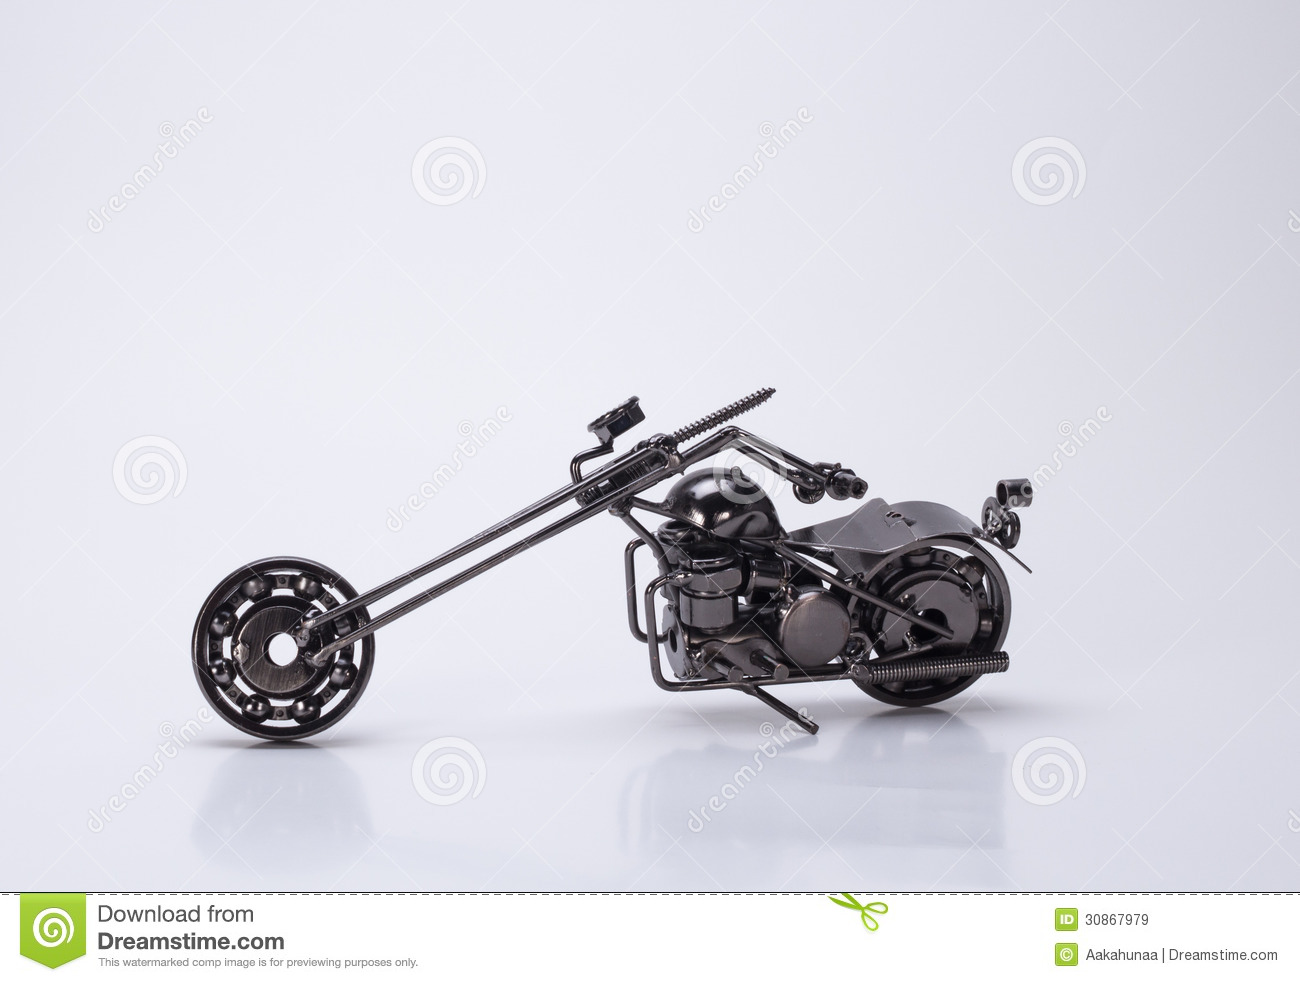 How to make a motorcycle 44